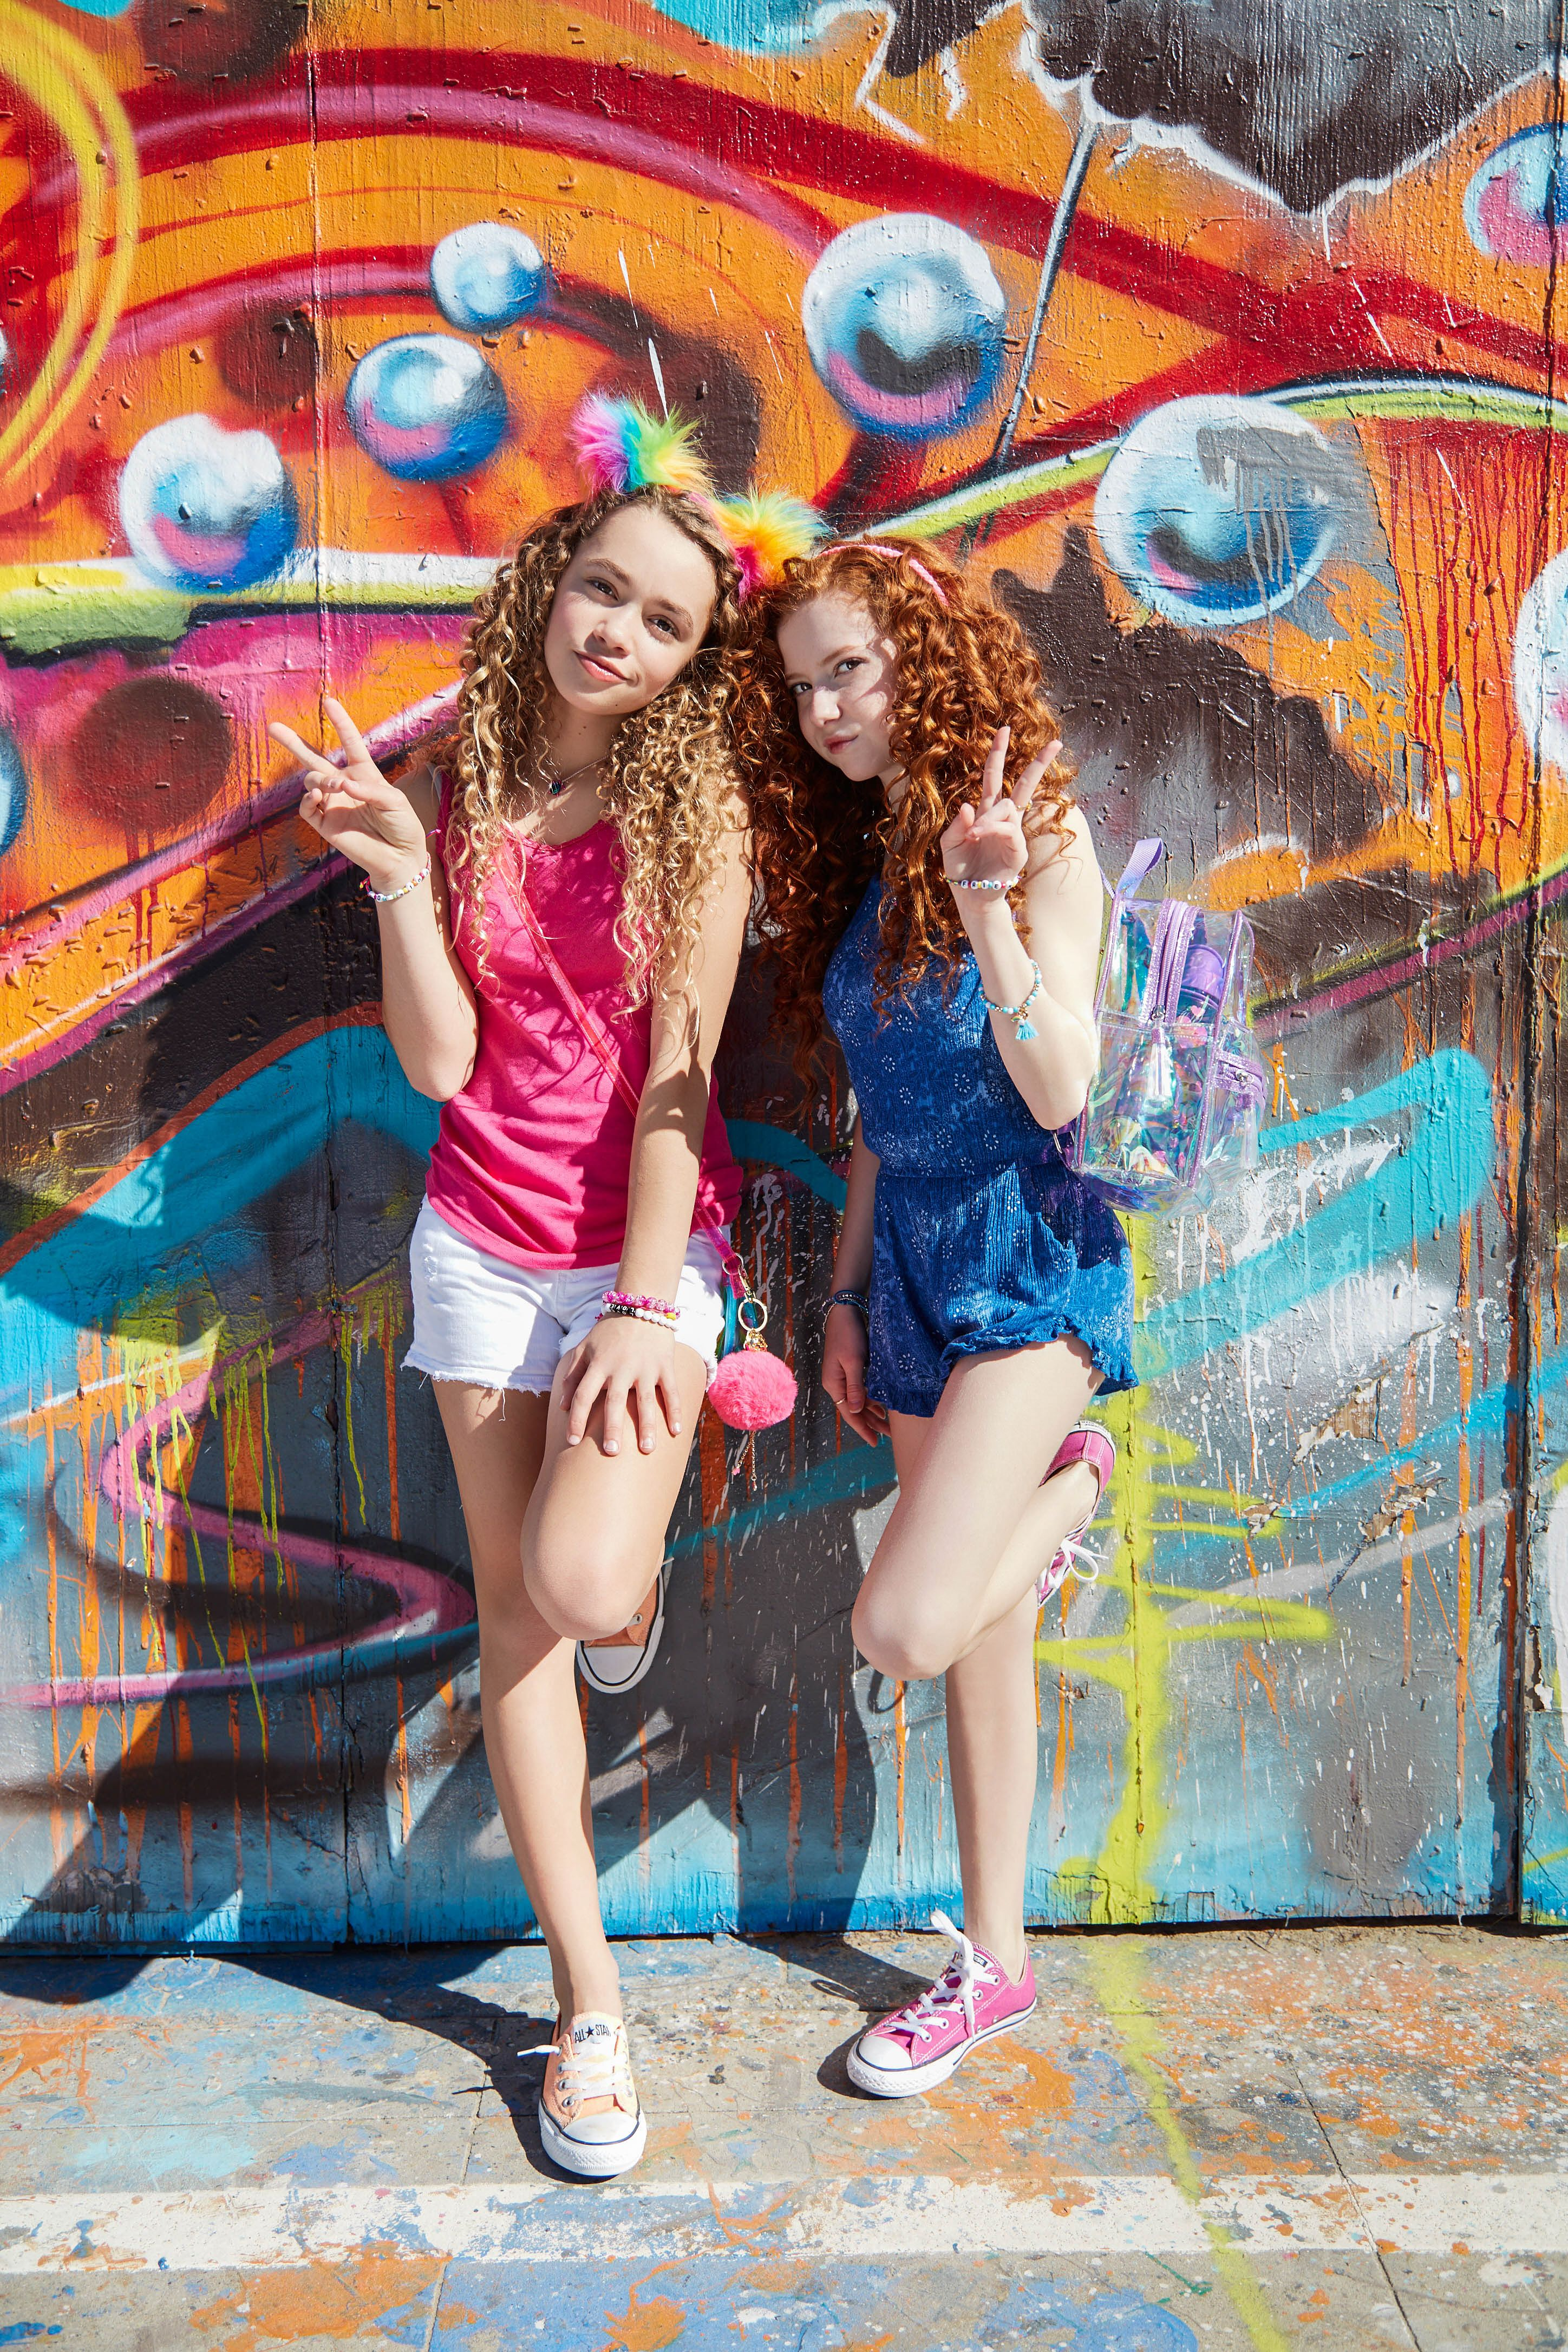 Add a splash of color and a splash of fun to your Spring Break with our Destination Fun collection